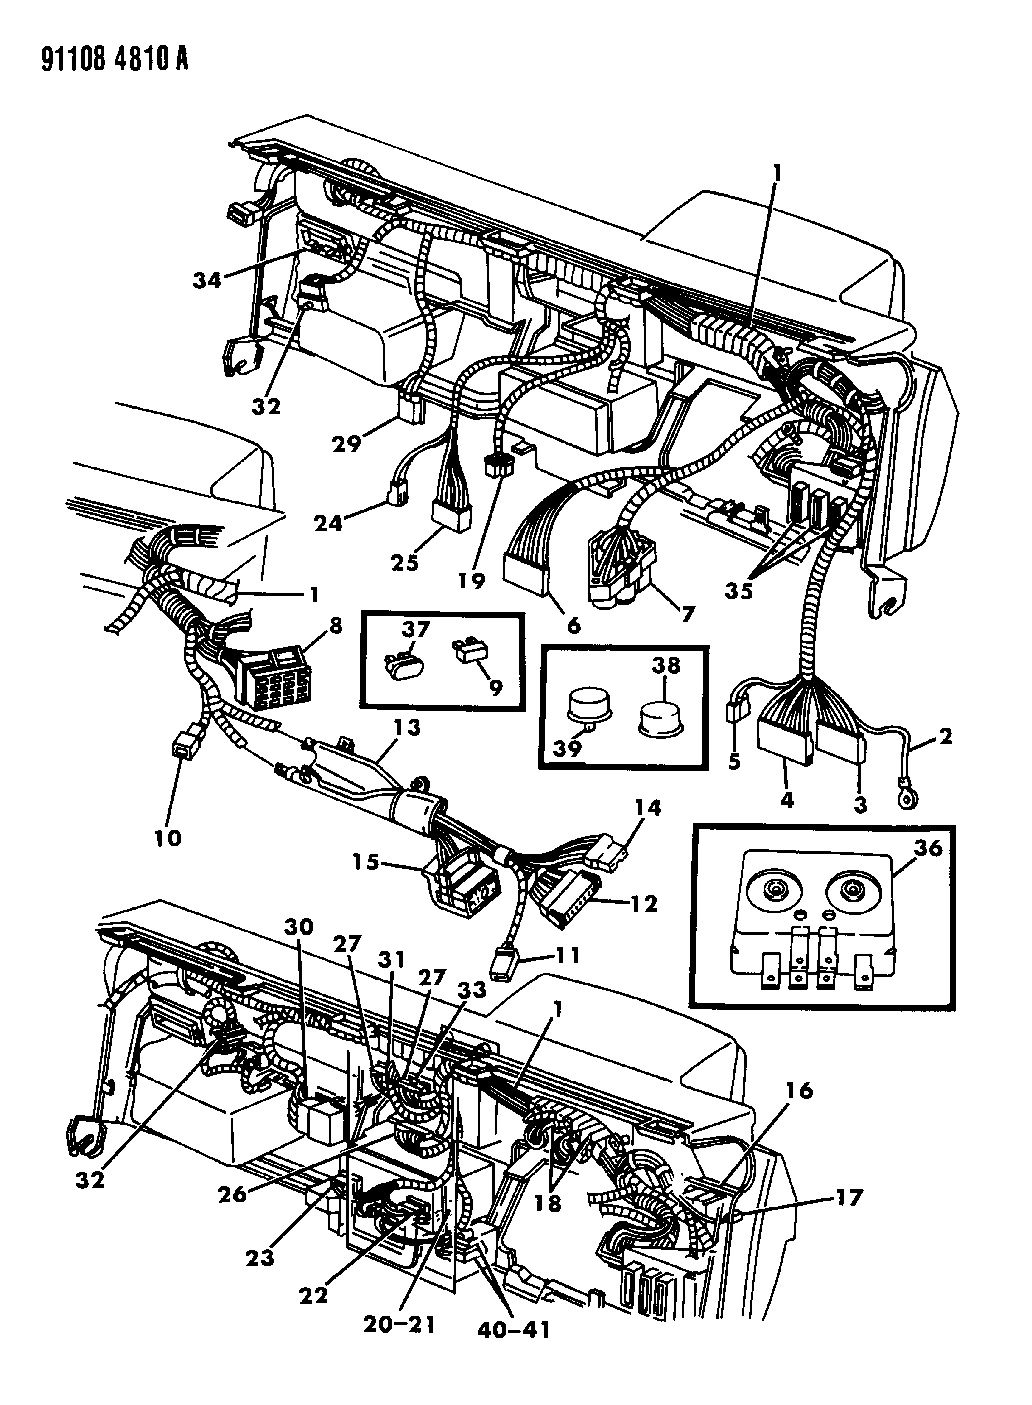 1991 dodge shadow wiring - instrument panel